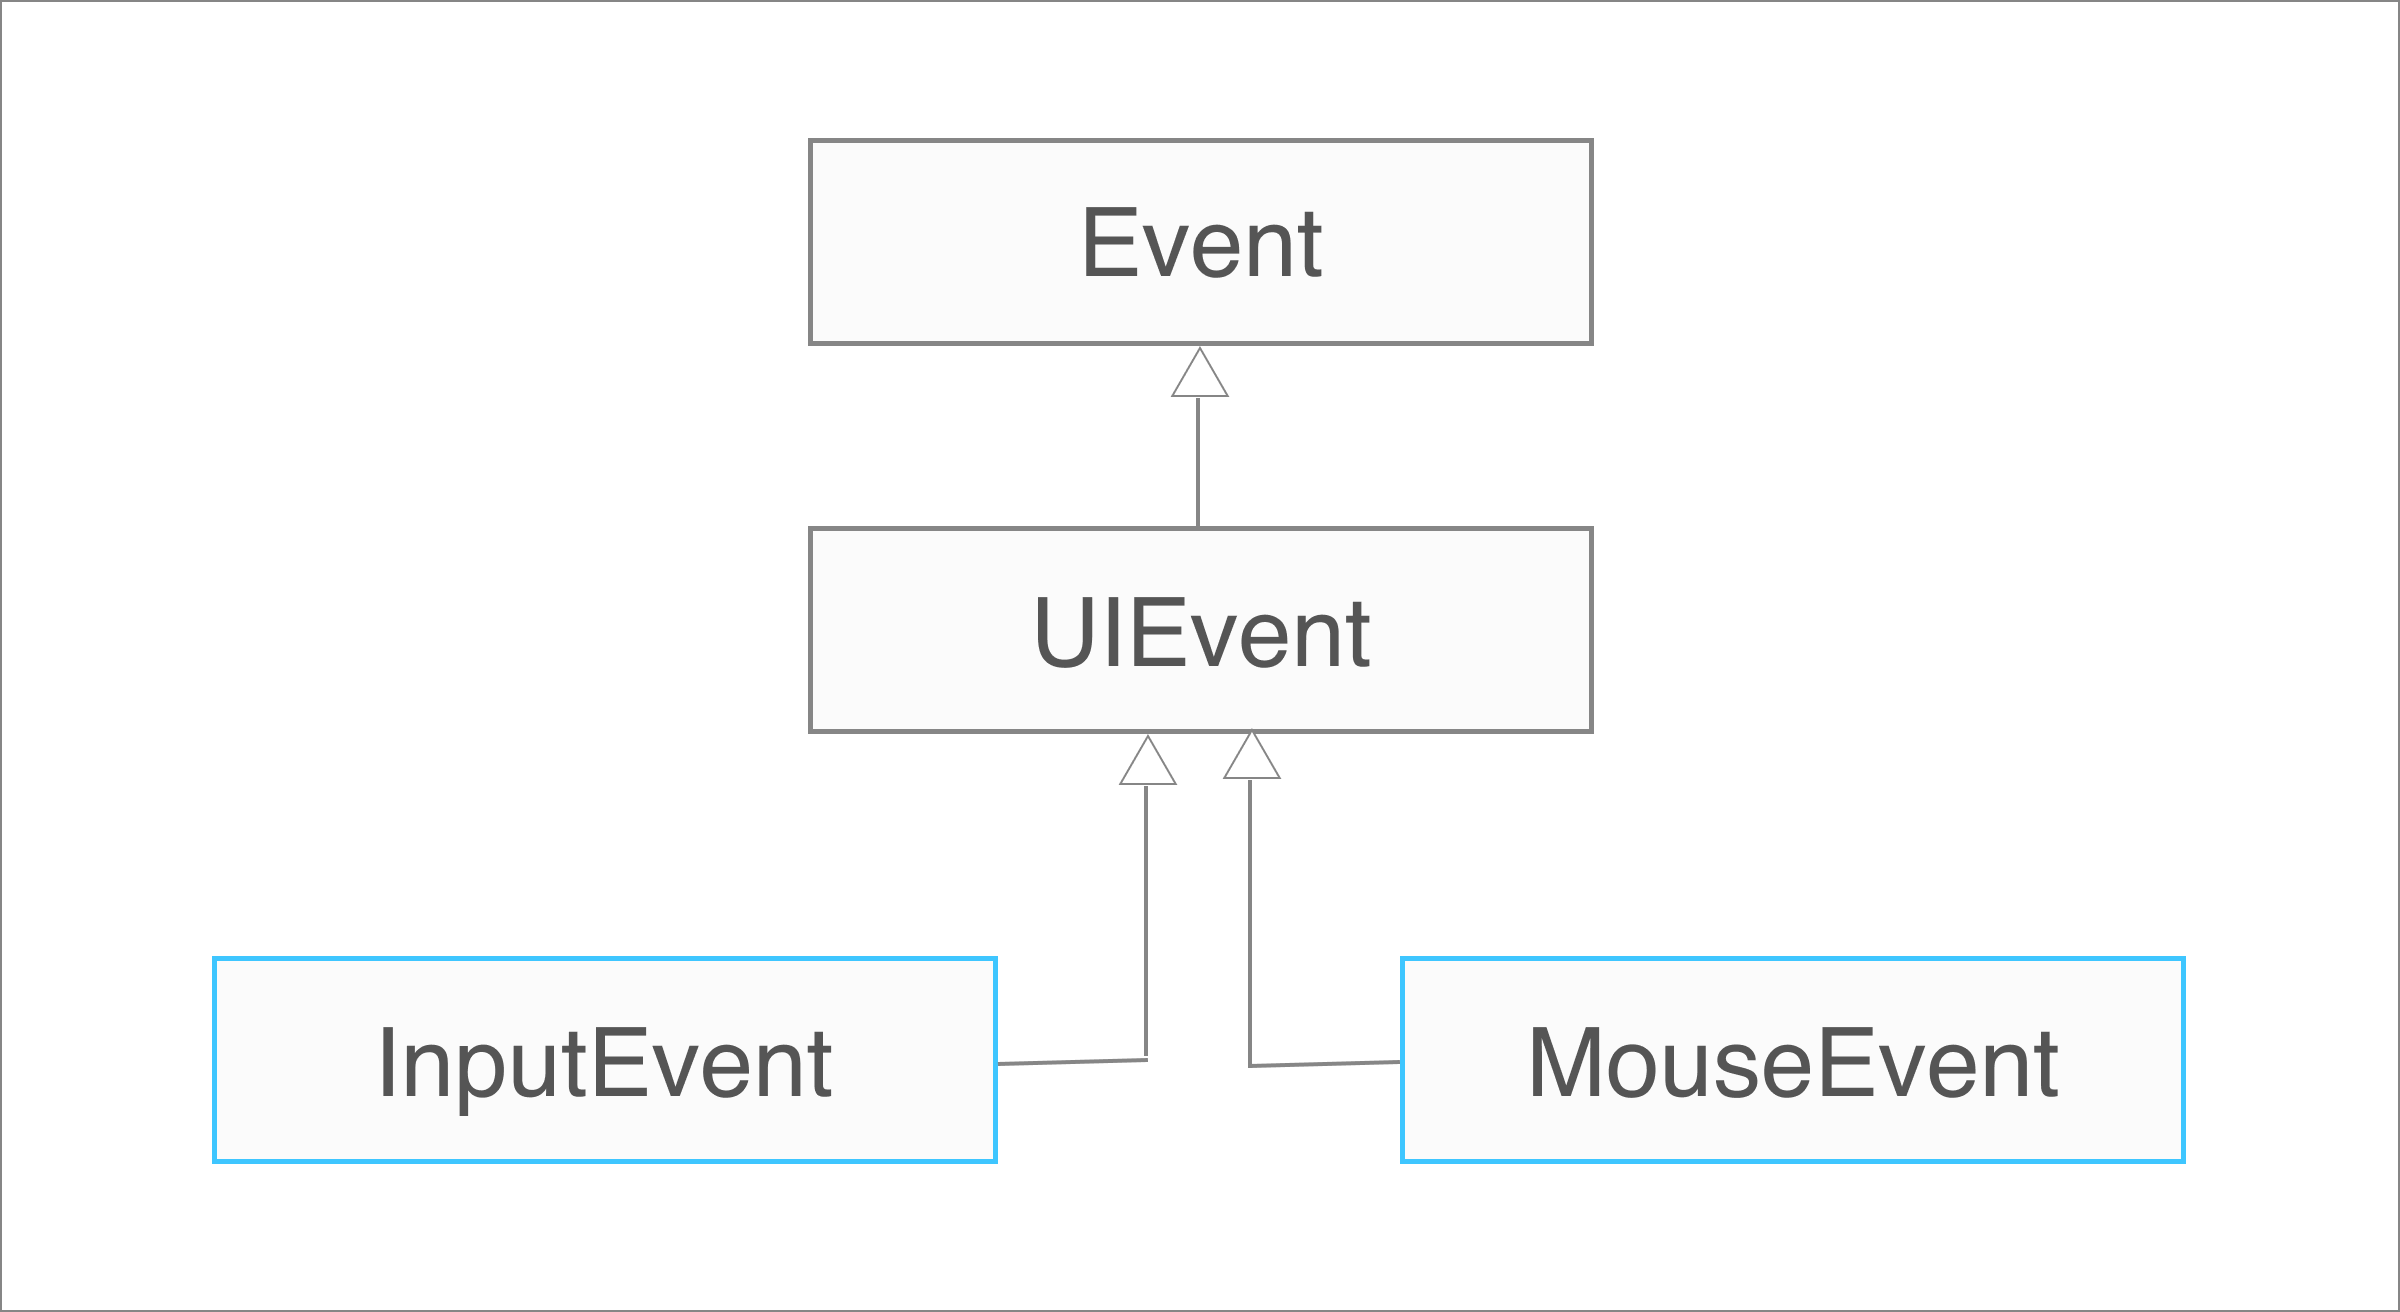 input-event mouse-event